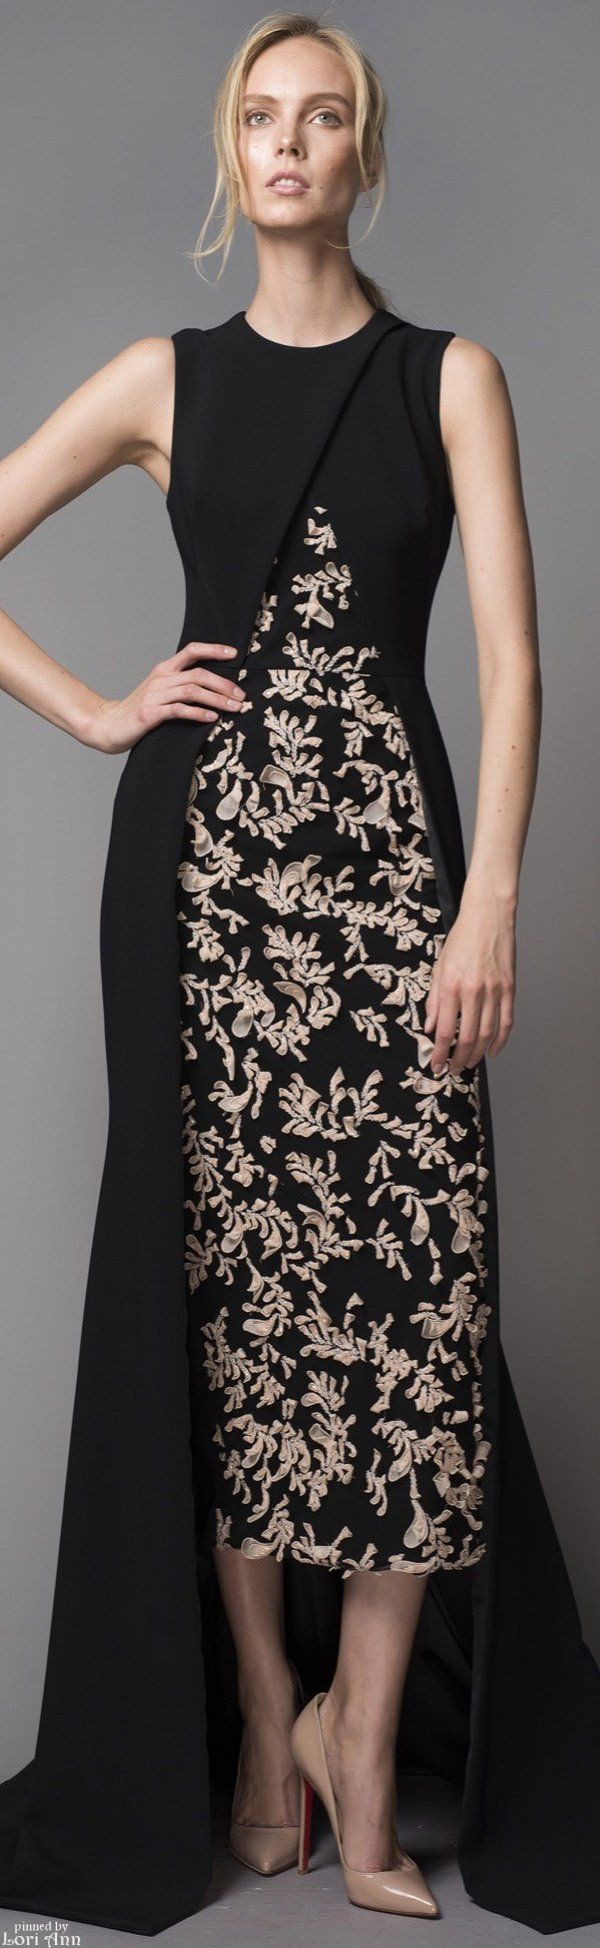 Bibhu Mohapatra Resort 2016 black maxi dress women fashion outfit clothing style apparel @roressclothes closet ideas